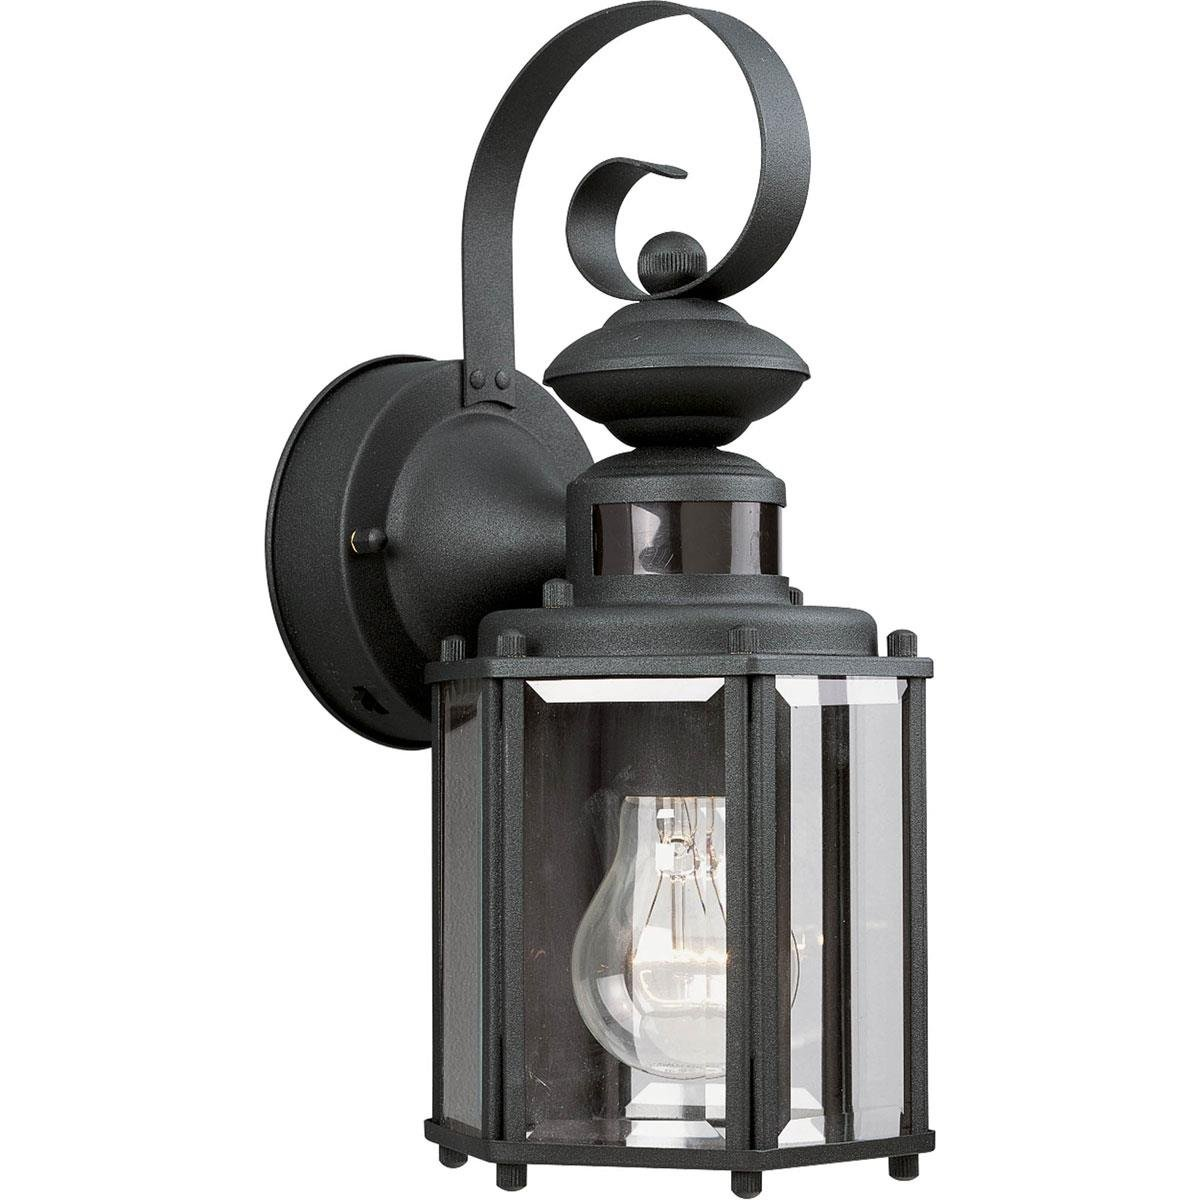 Black motion sensor outdoor wall lantern amazon aloadofball Choice Image